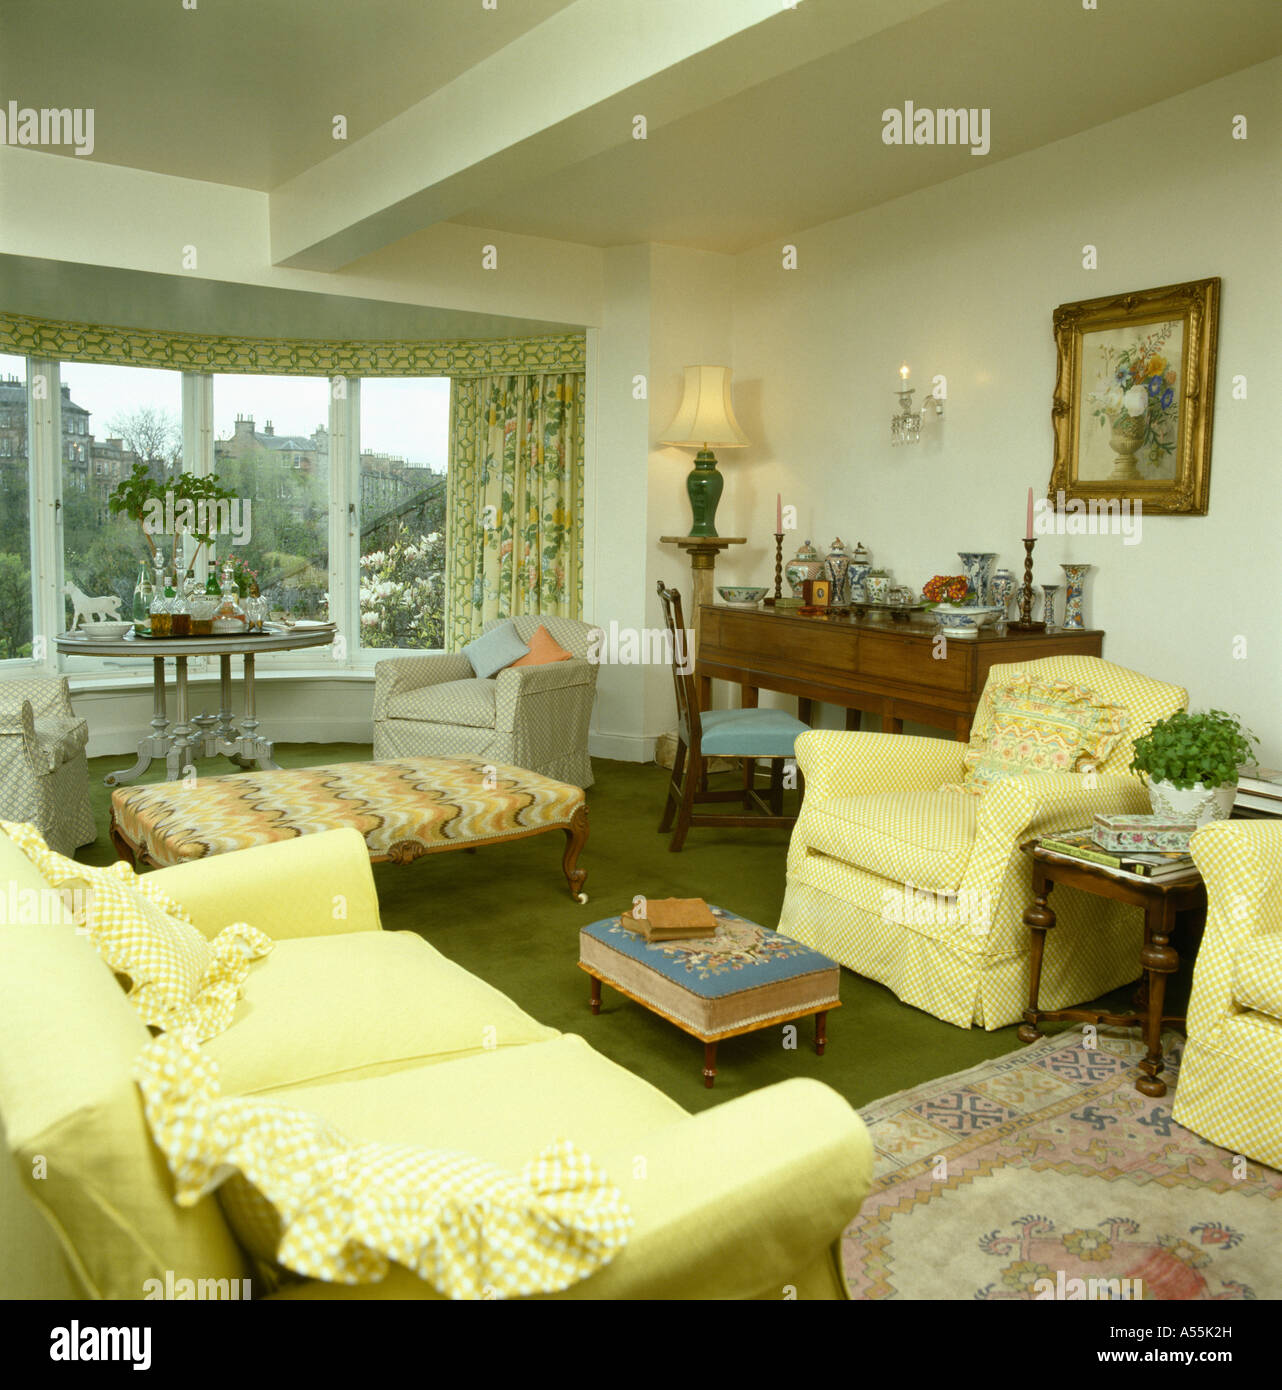 pale yellow settee and armchairs in traditional apartment living